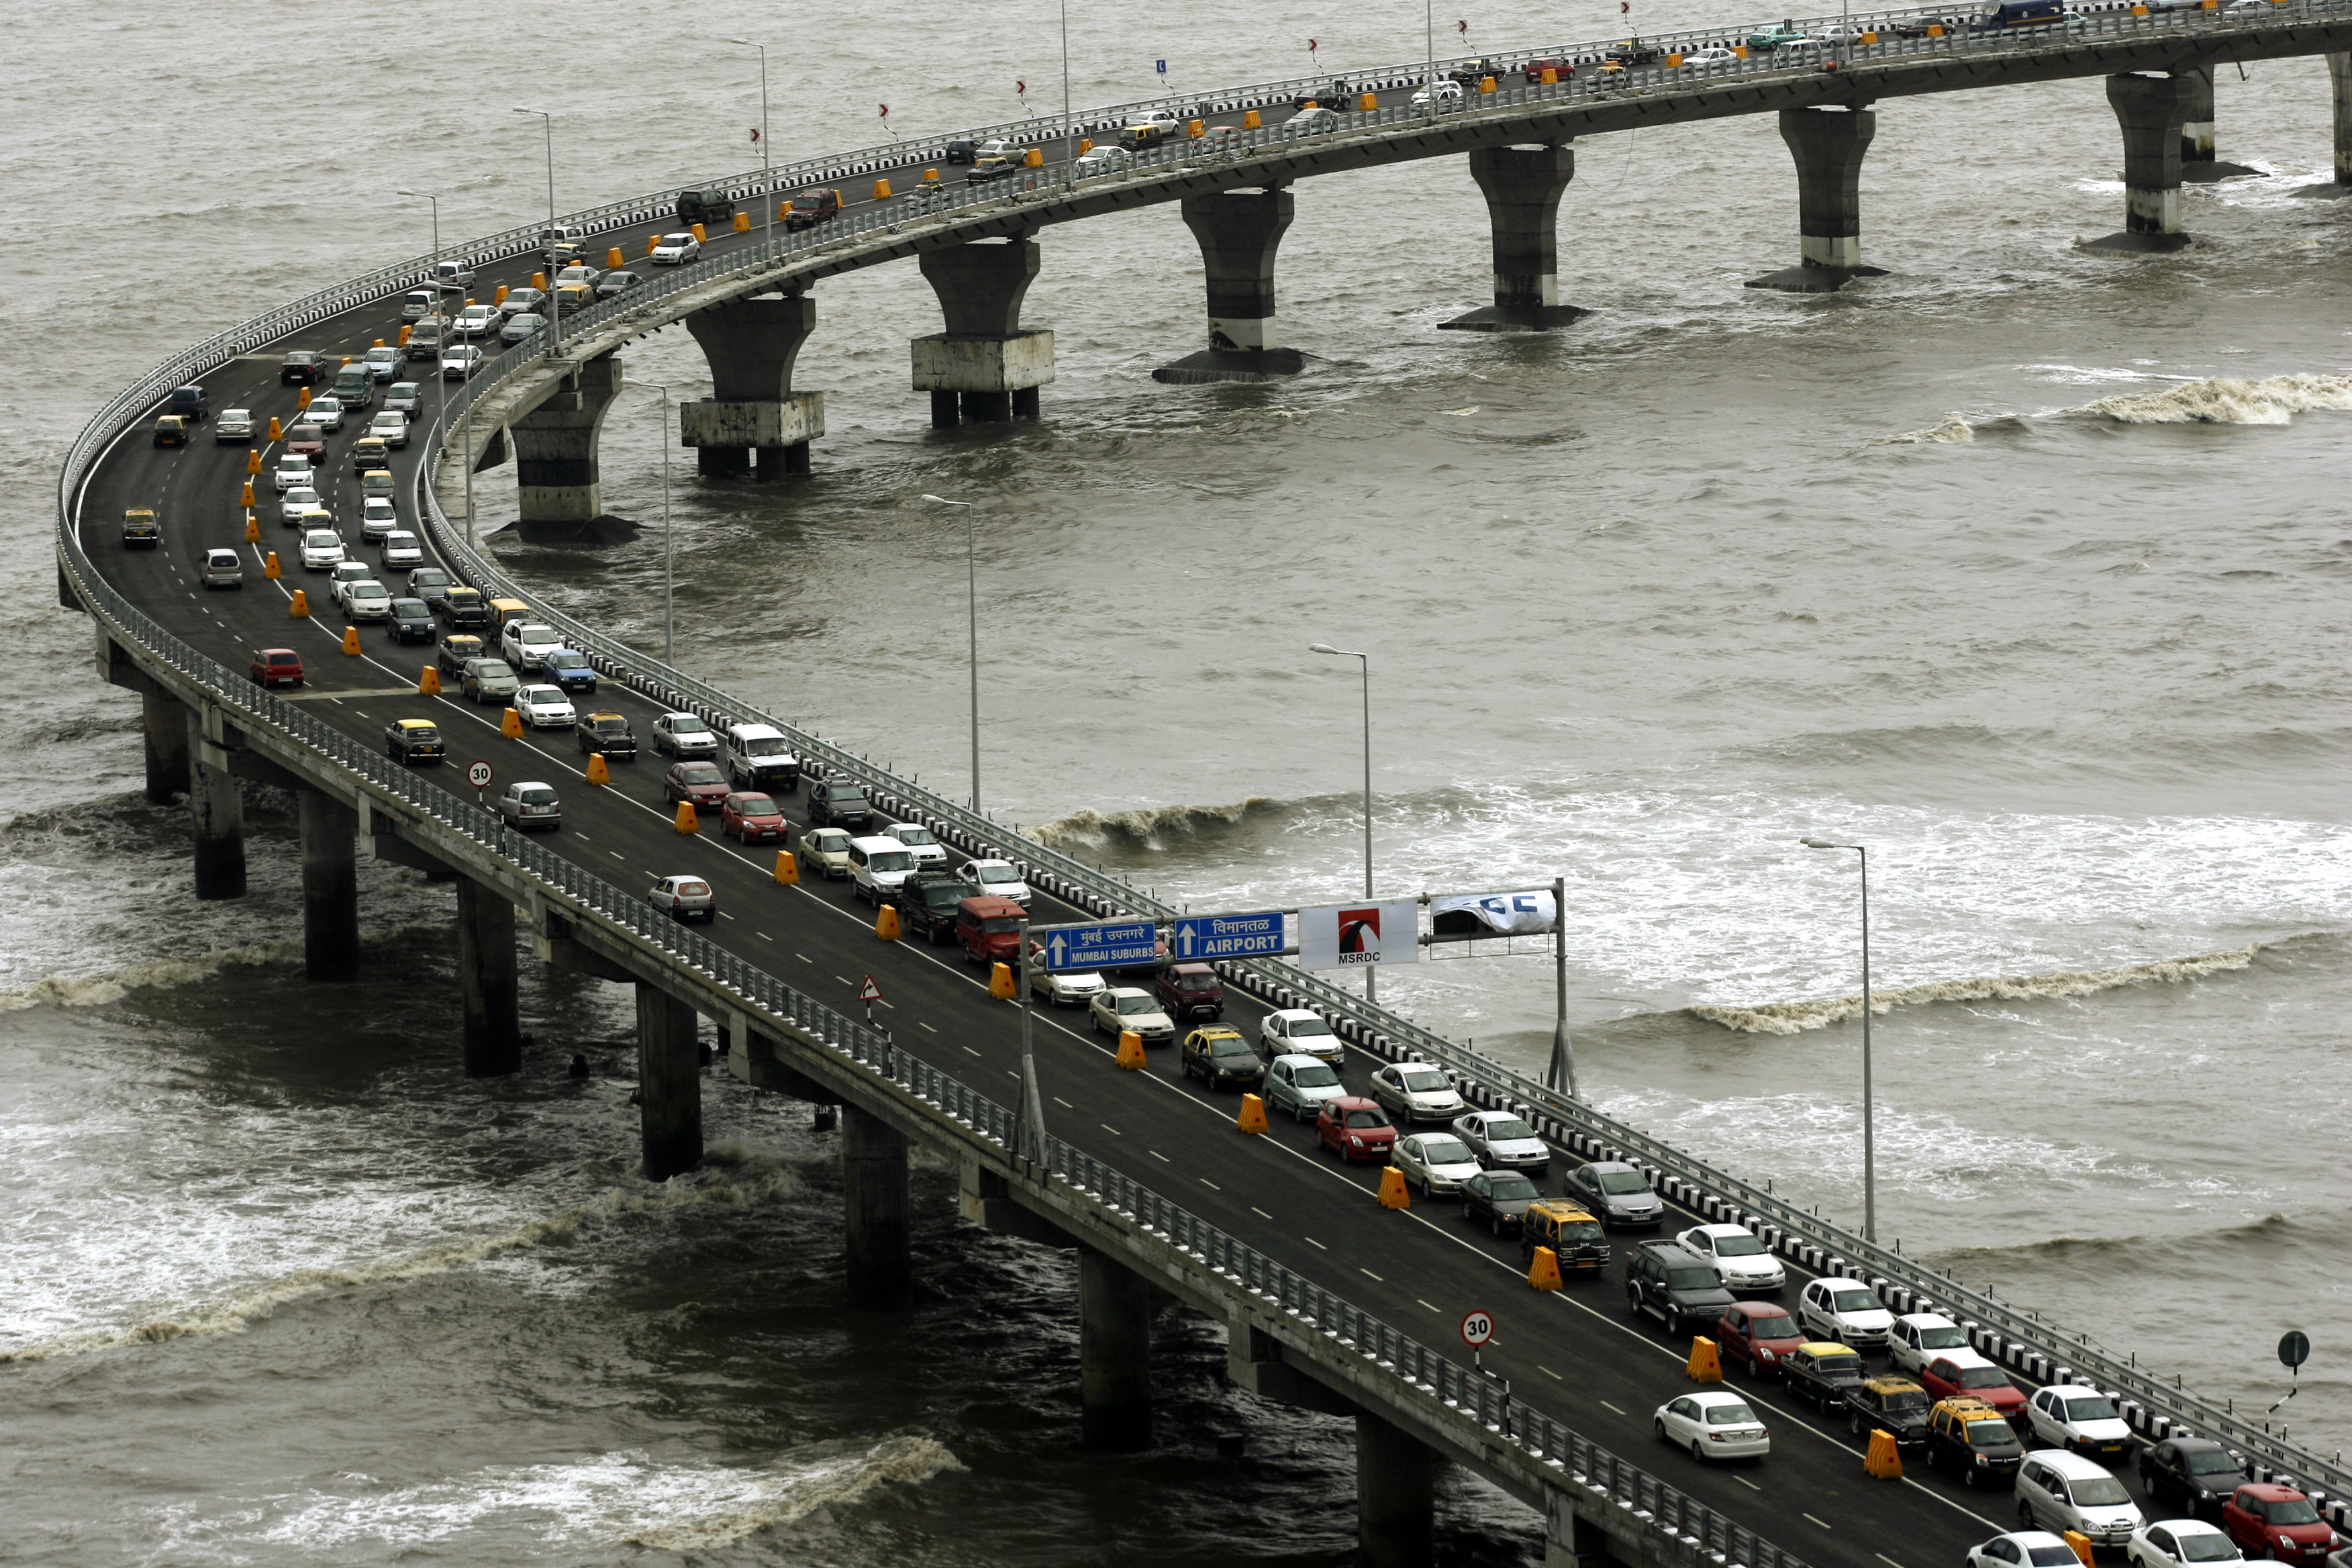 Bandra Worli Sealink was initially estimated to cost Rs 300 crore and move 1,00,000 cars a day. It ended up costing Rs 1,600 crore and its average daily ridership stands at 32,312 cars. Photo credit: Reuters